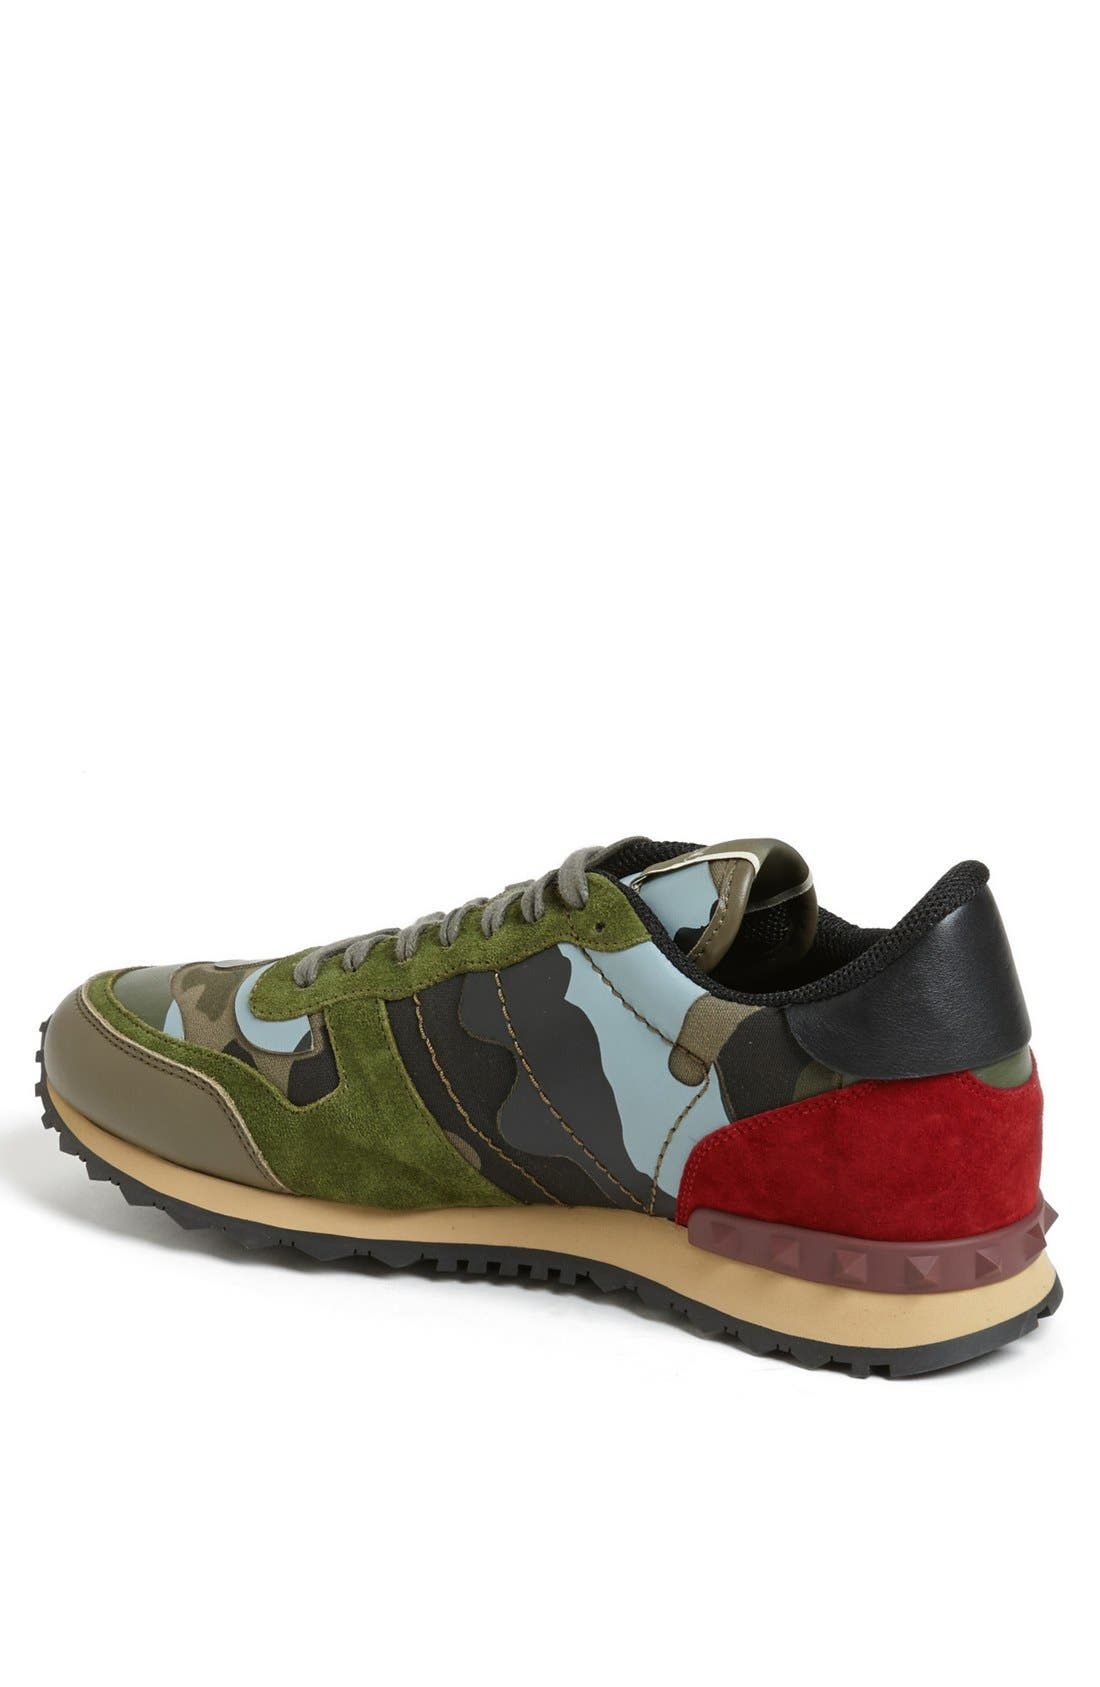 Camouflage Sneaker,                             Alternate thumbnail 2, color,                             Army Green